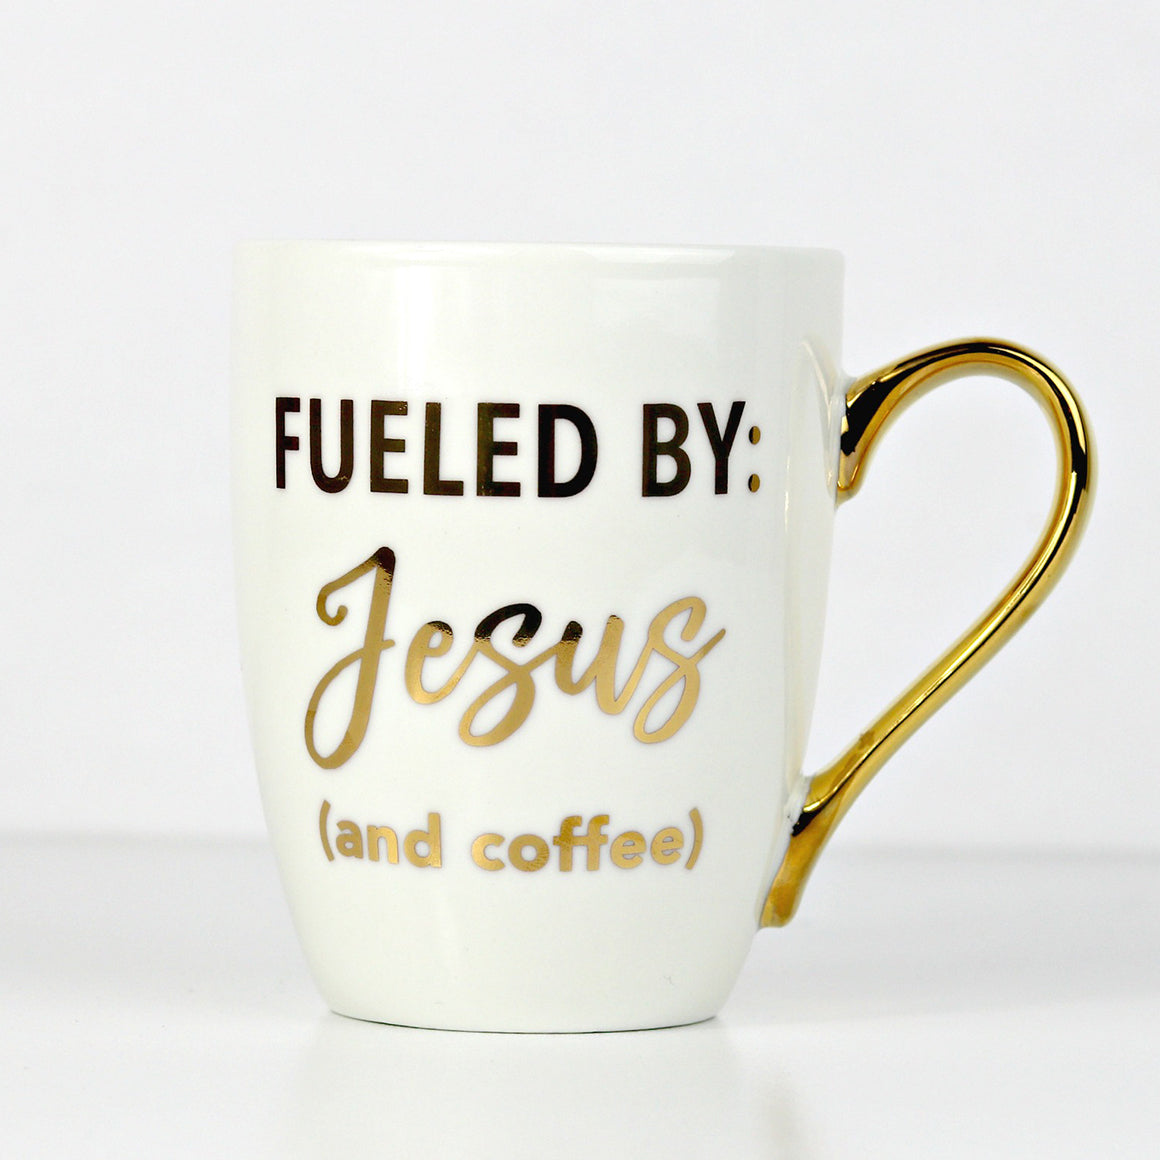 Fueled by Jesus and coffee, Christian coffee mug, Doses of Grace